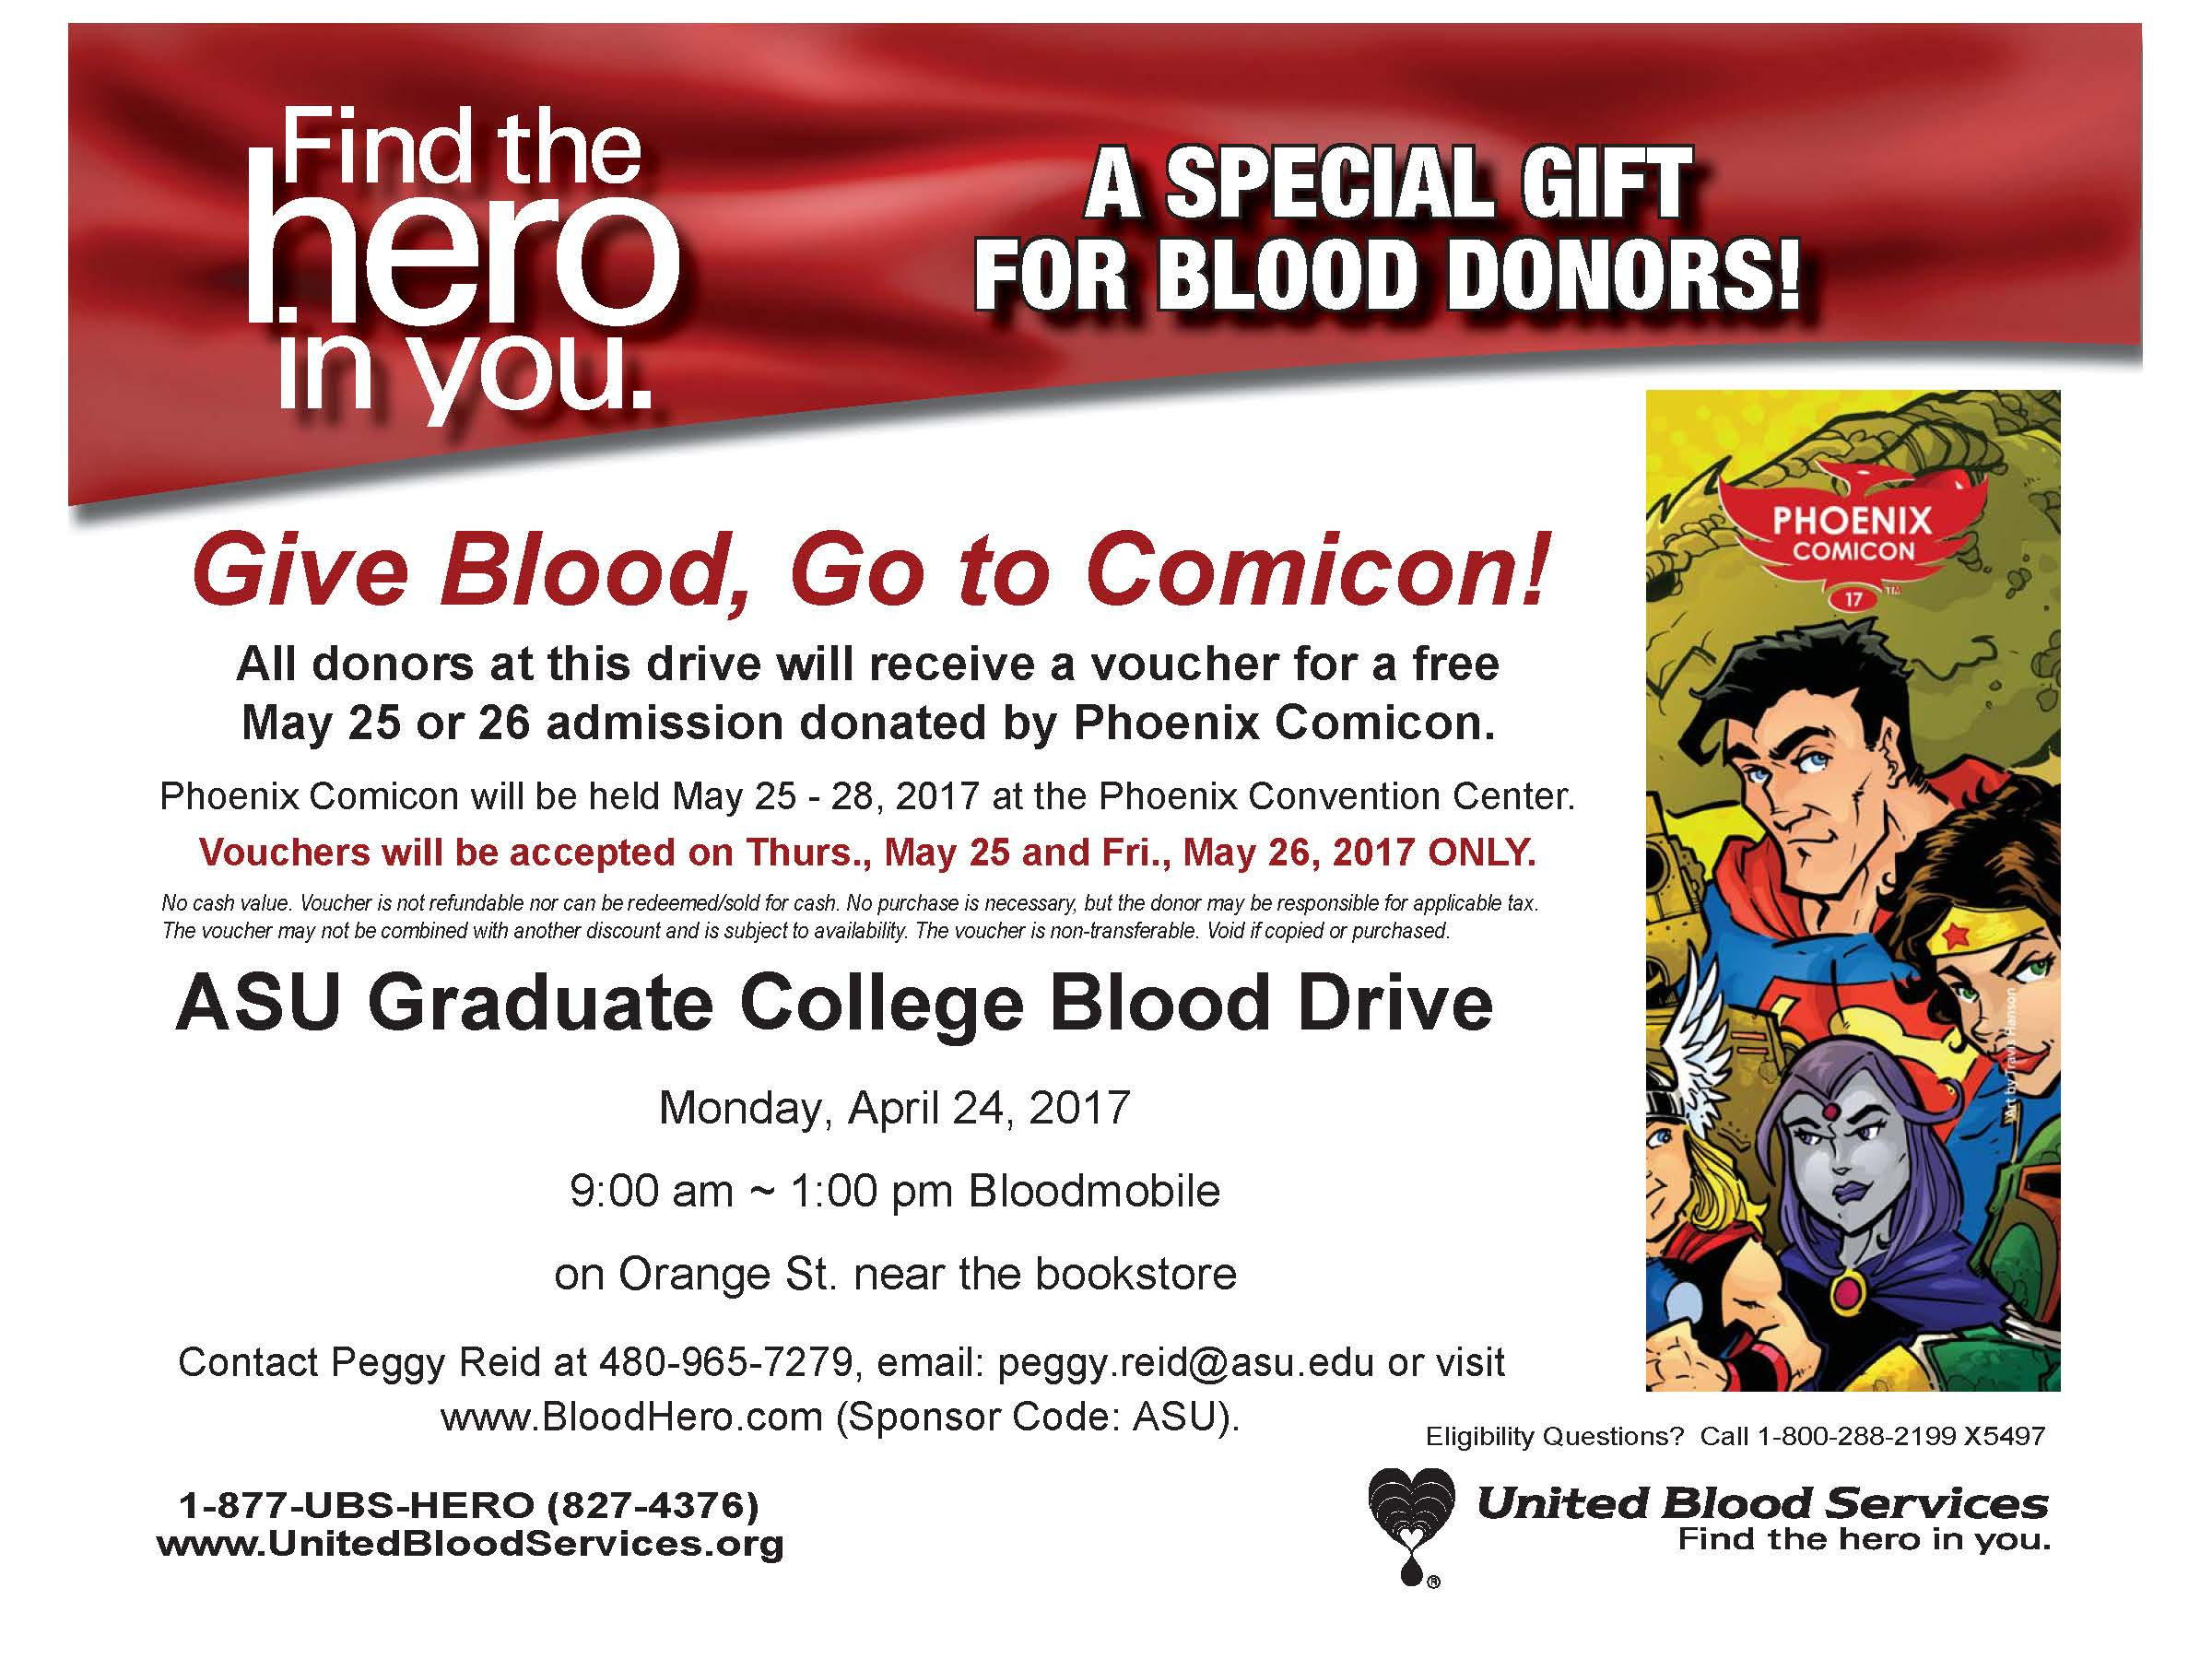 Graduate College And United Blood Services Blood Drive Asu Events